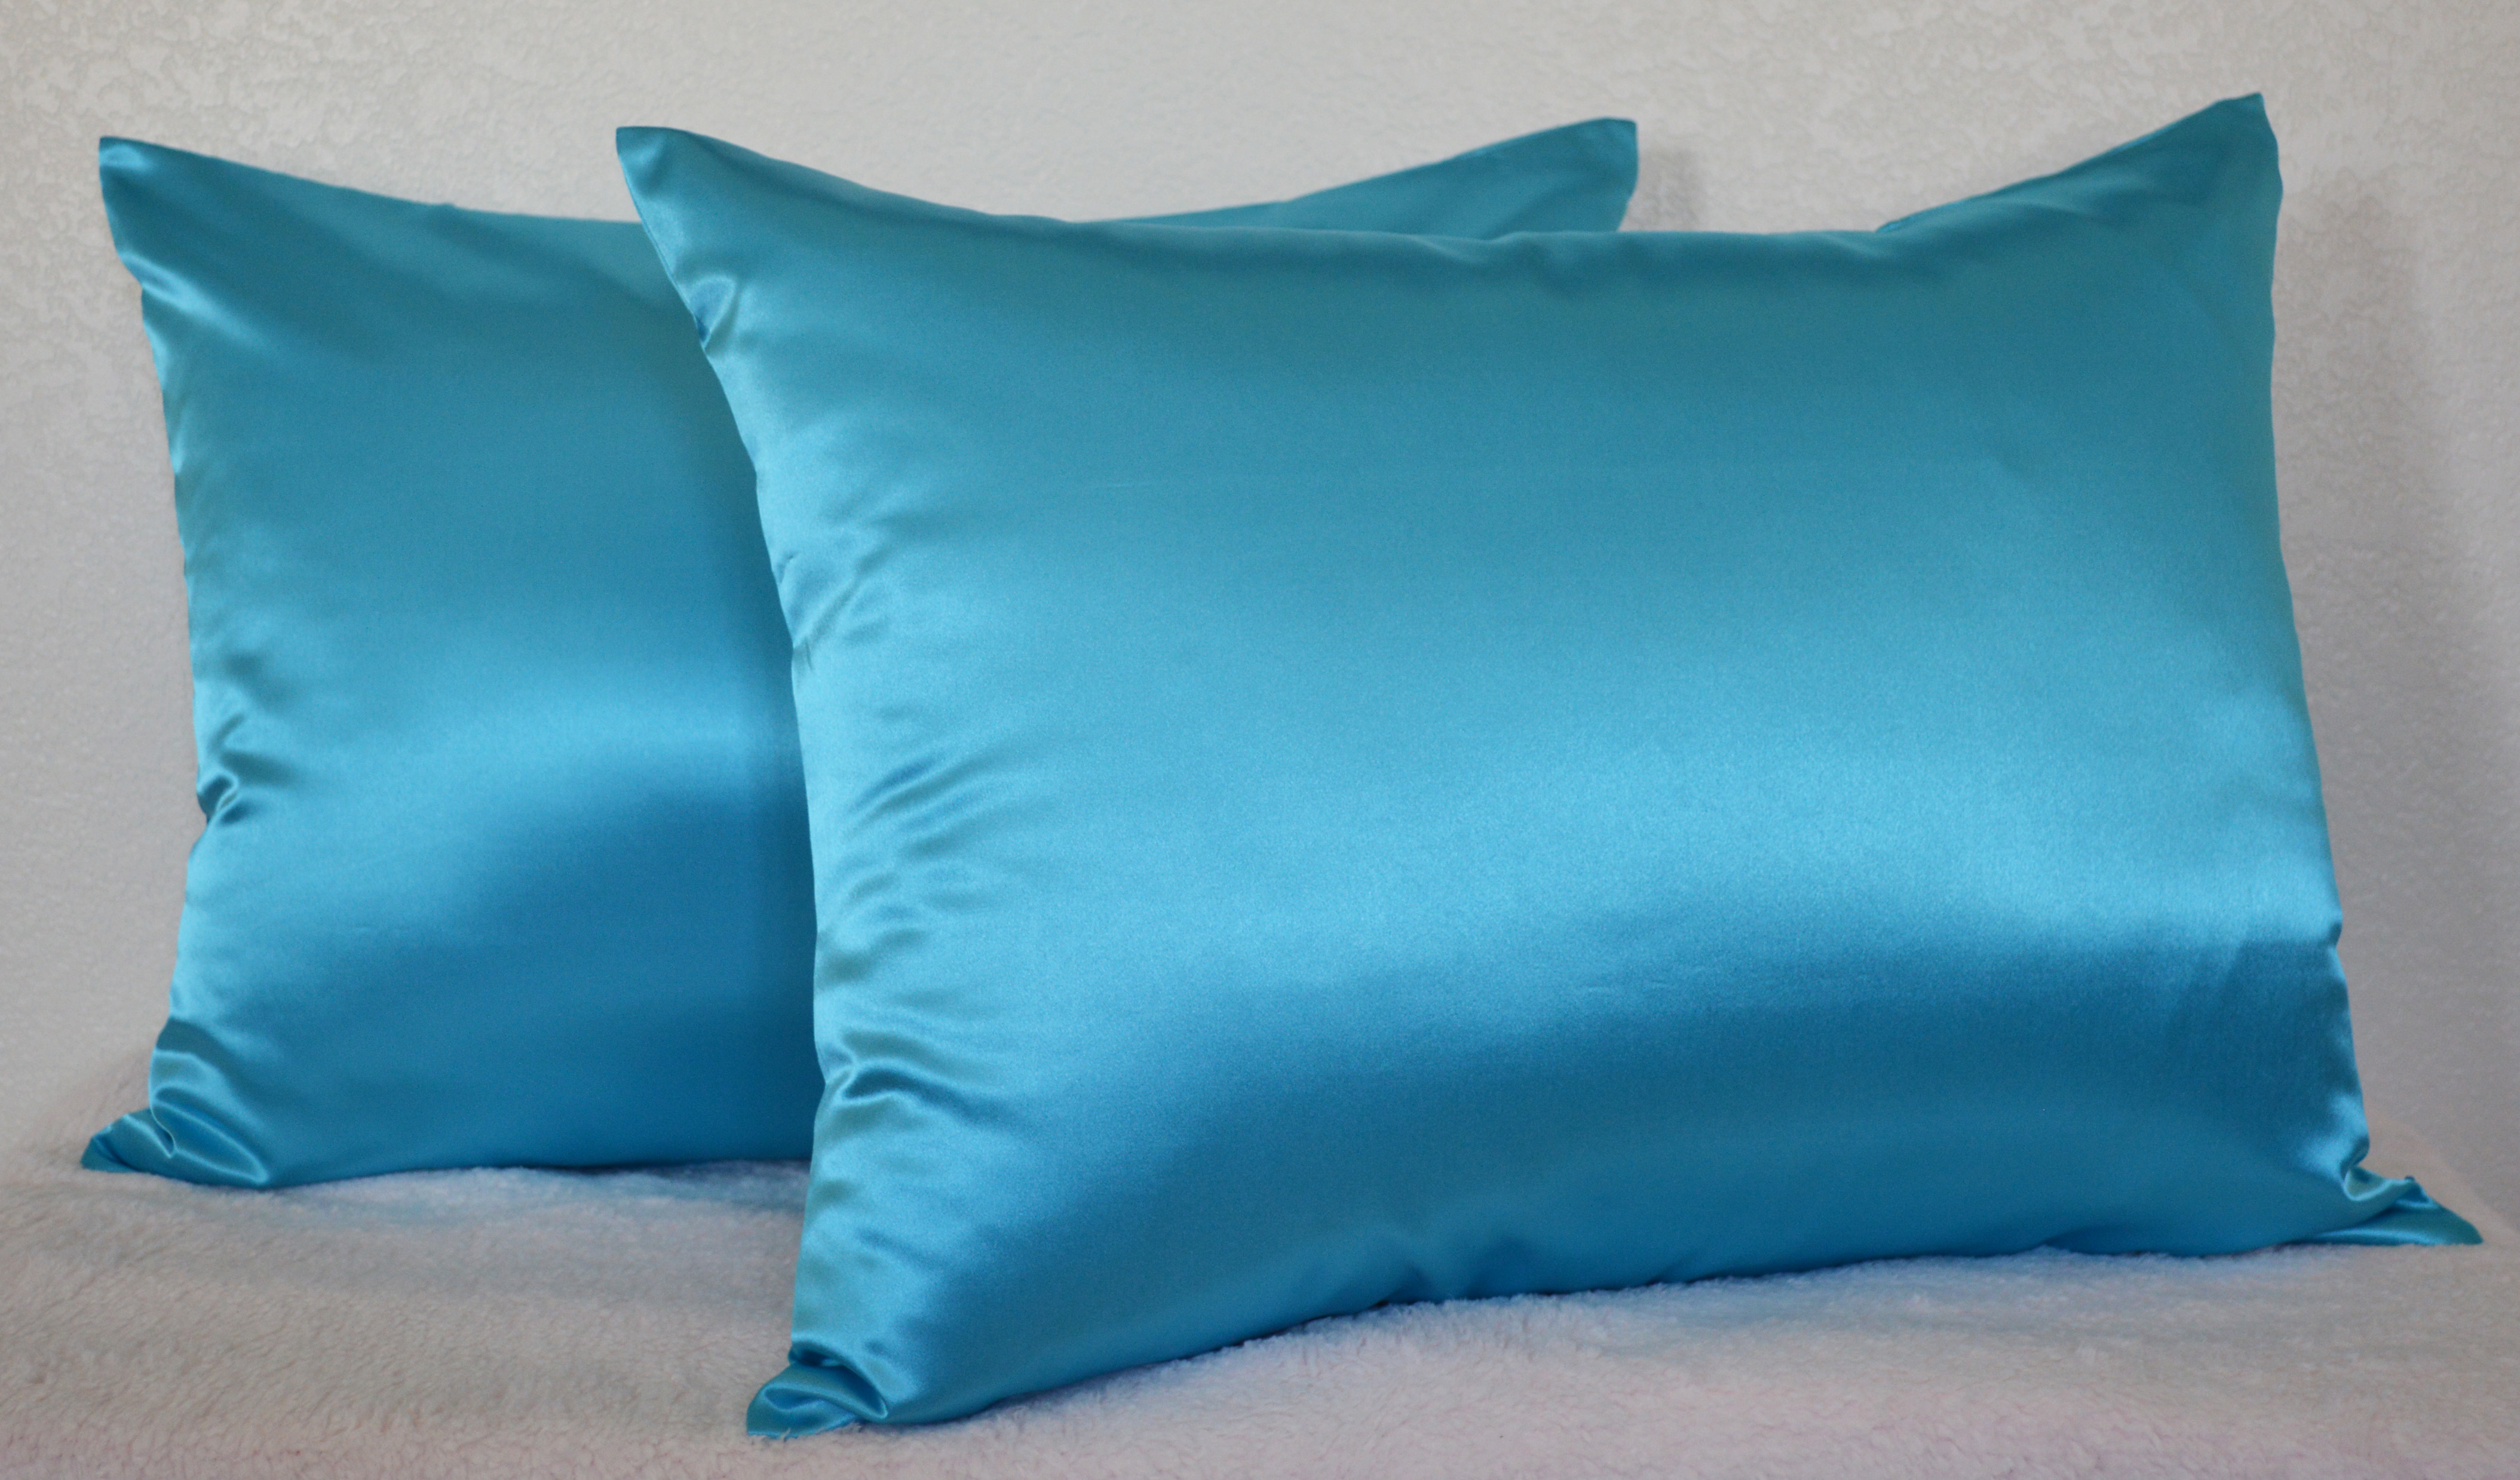 Satin Pillowcases With Zipper Aiking Home 350tc Bridal Satin Pillow Cases Zipper Closure Pack Of 2 Size 20 X26 Standard Turquoise